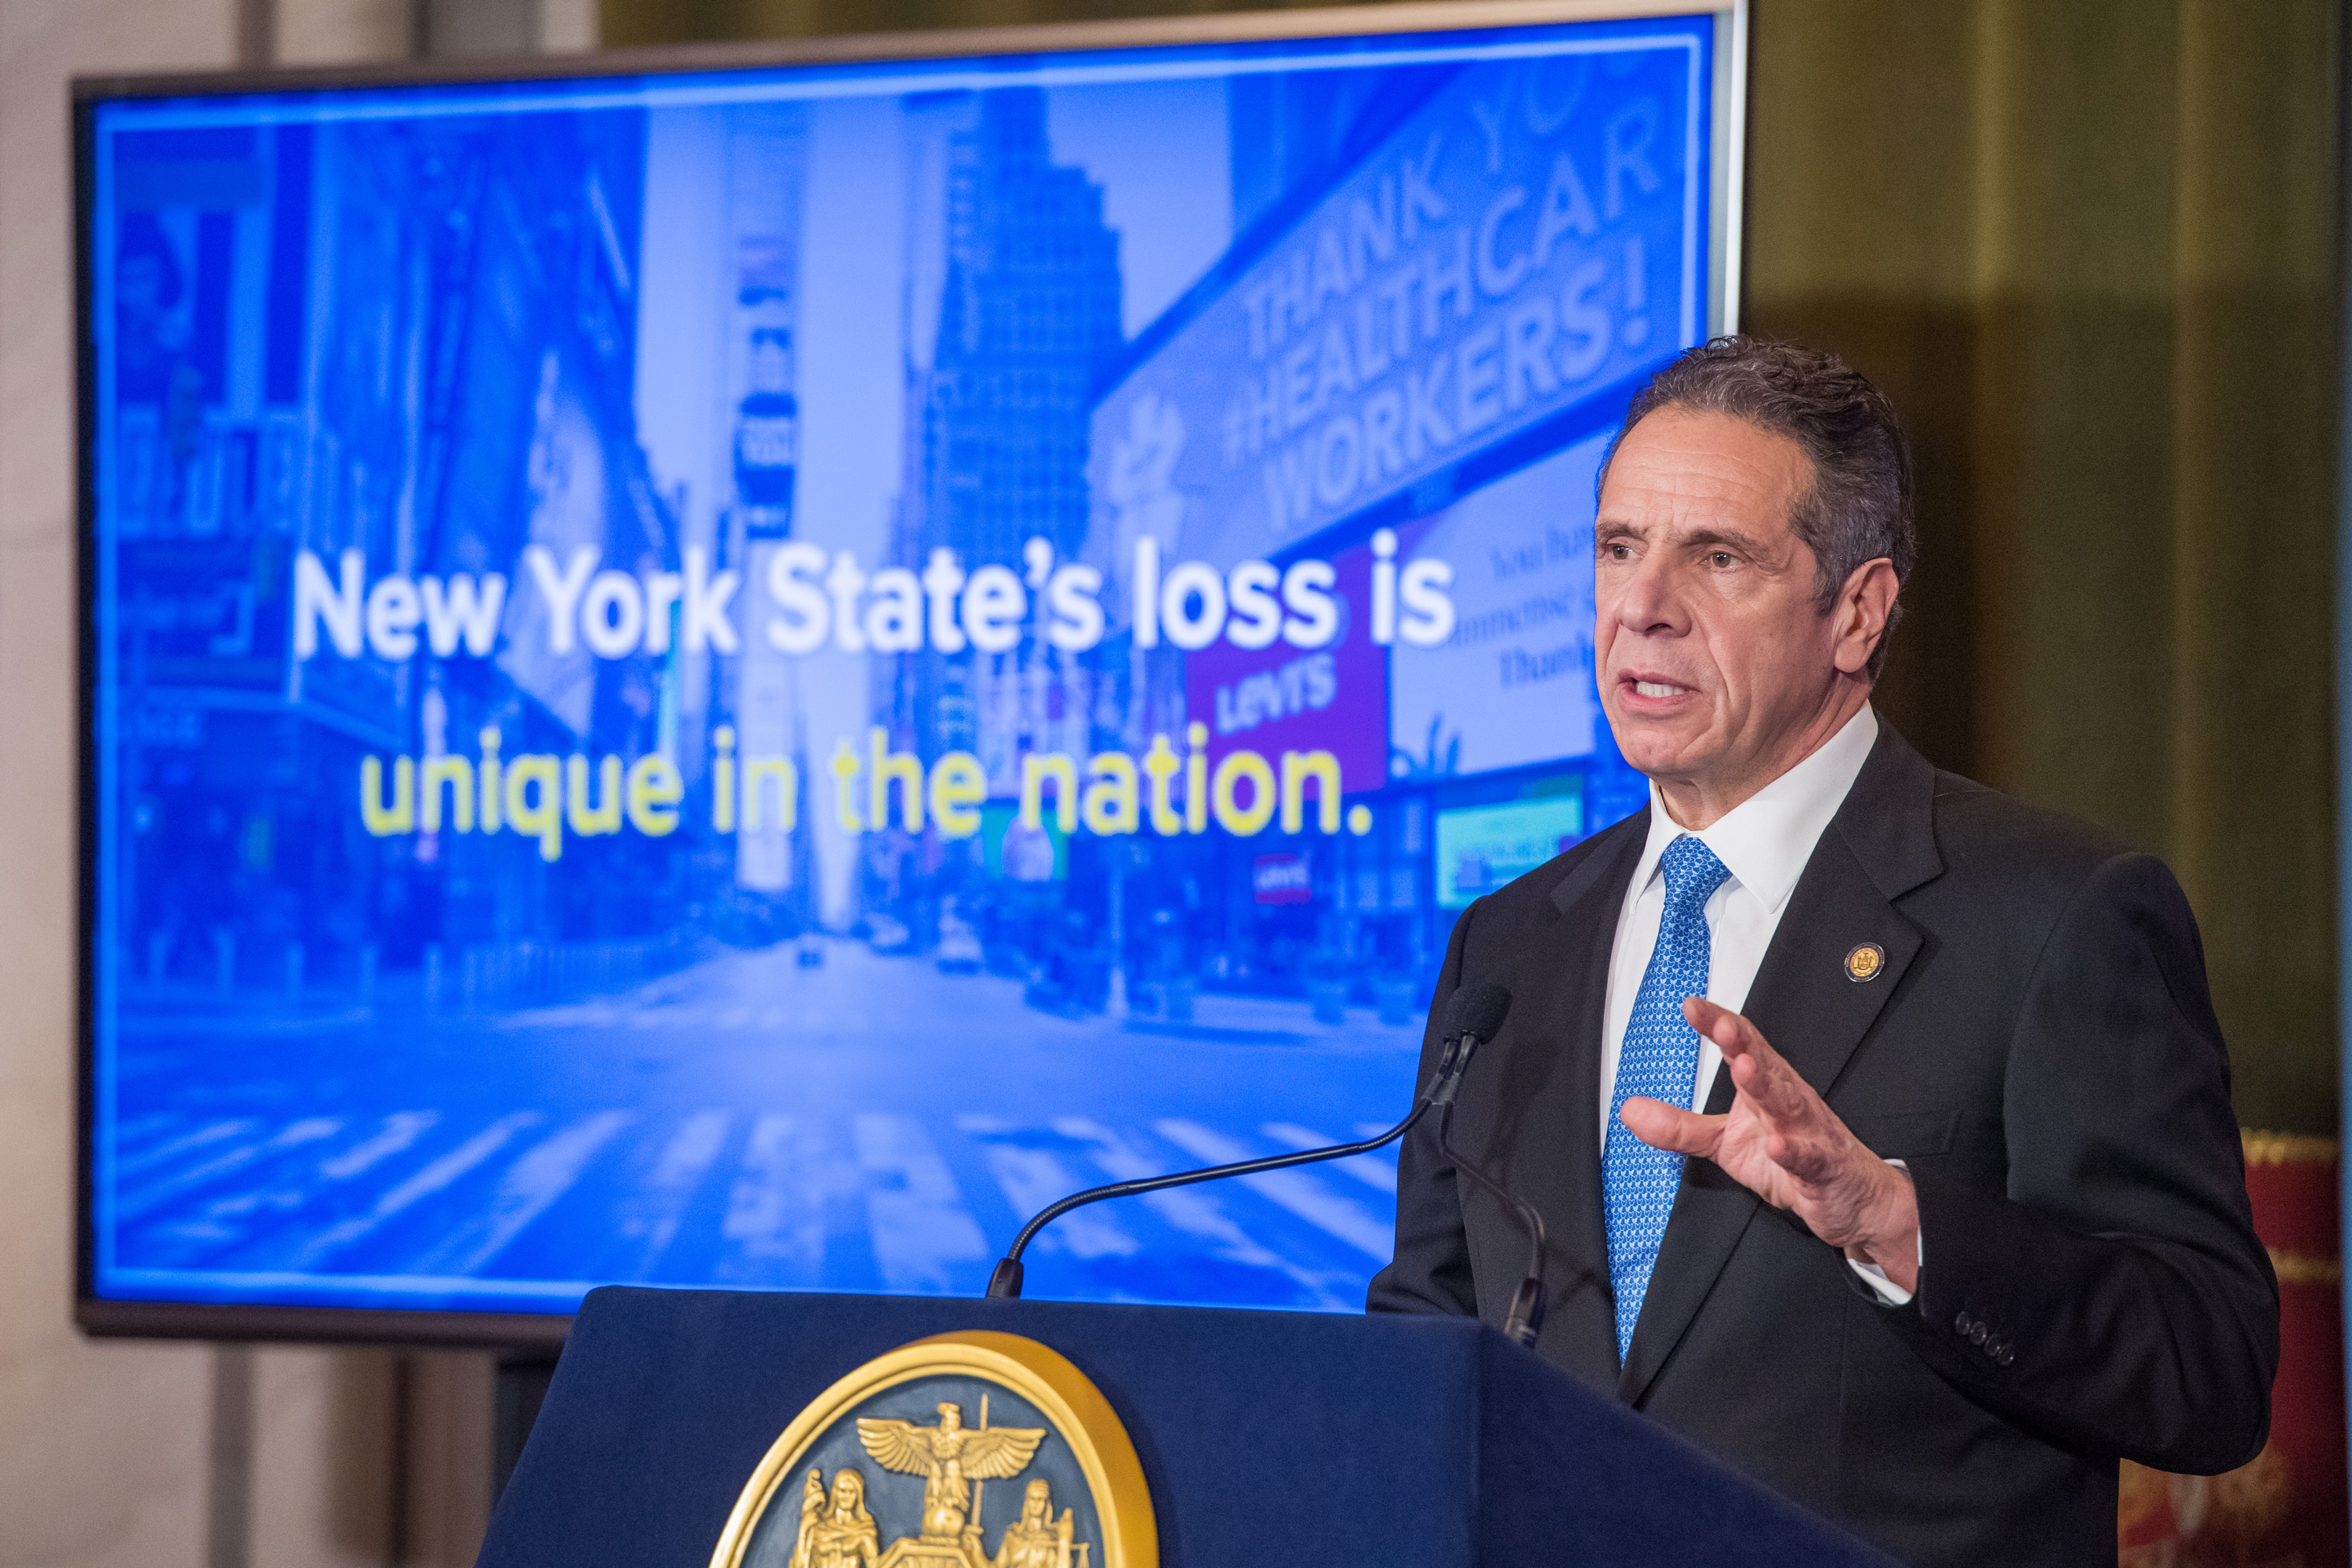 Governor Andrew Cuomo delivers his executive budget in Albany, Jan. 19, 2021.